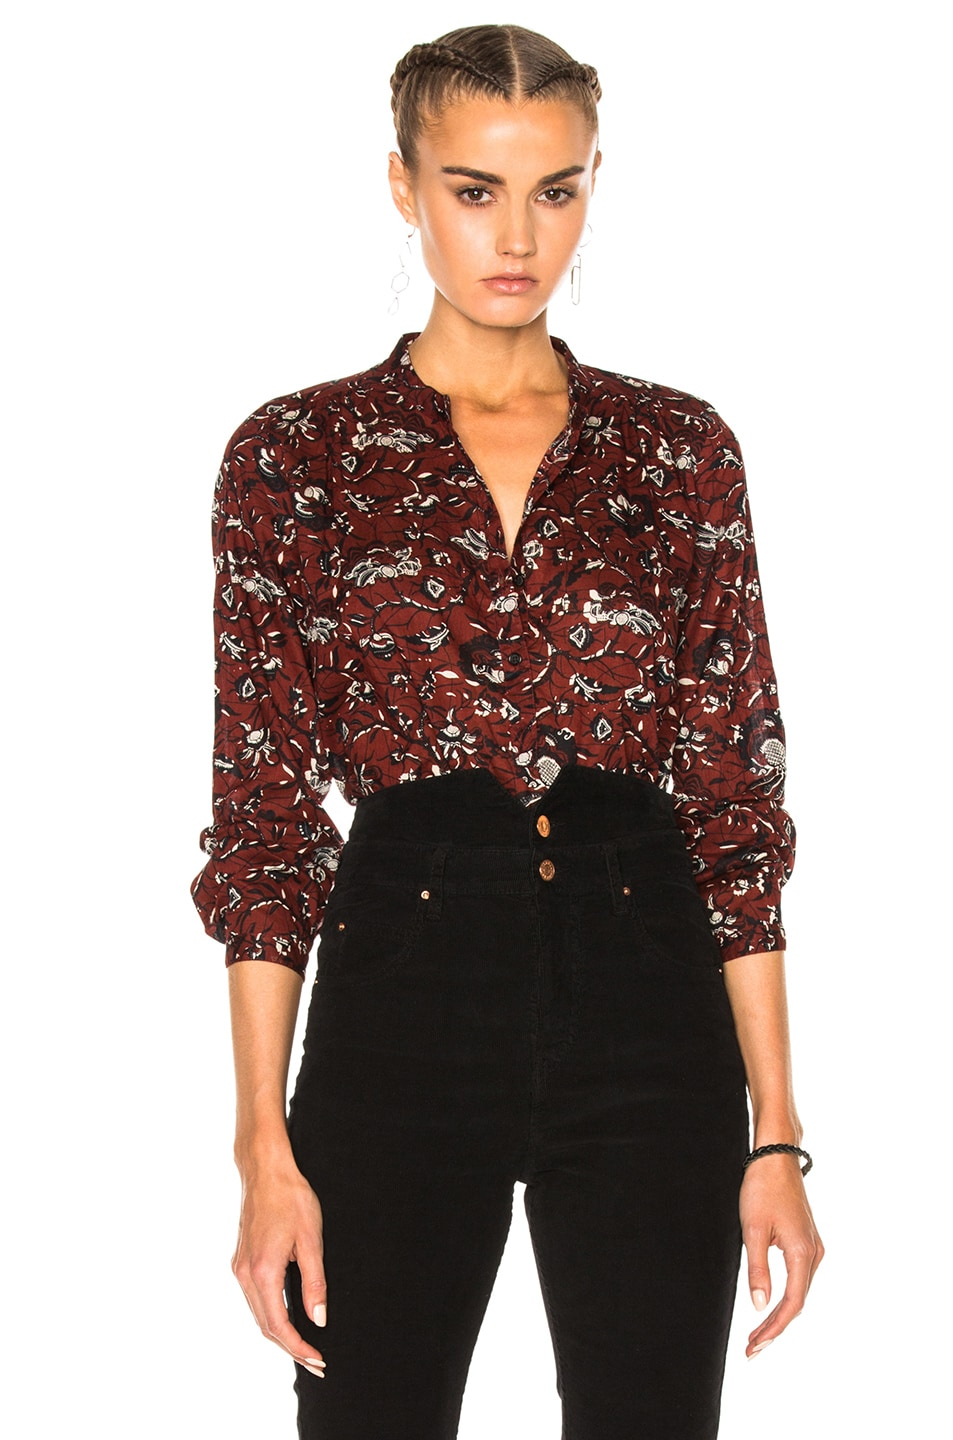 03c009613c7ddc Image 1 of Isabel Marant Etoile Amaria Rasta Flower Blouse in Burgundy